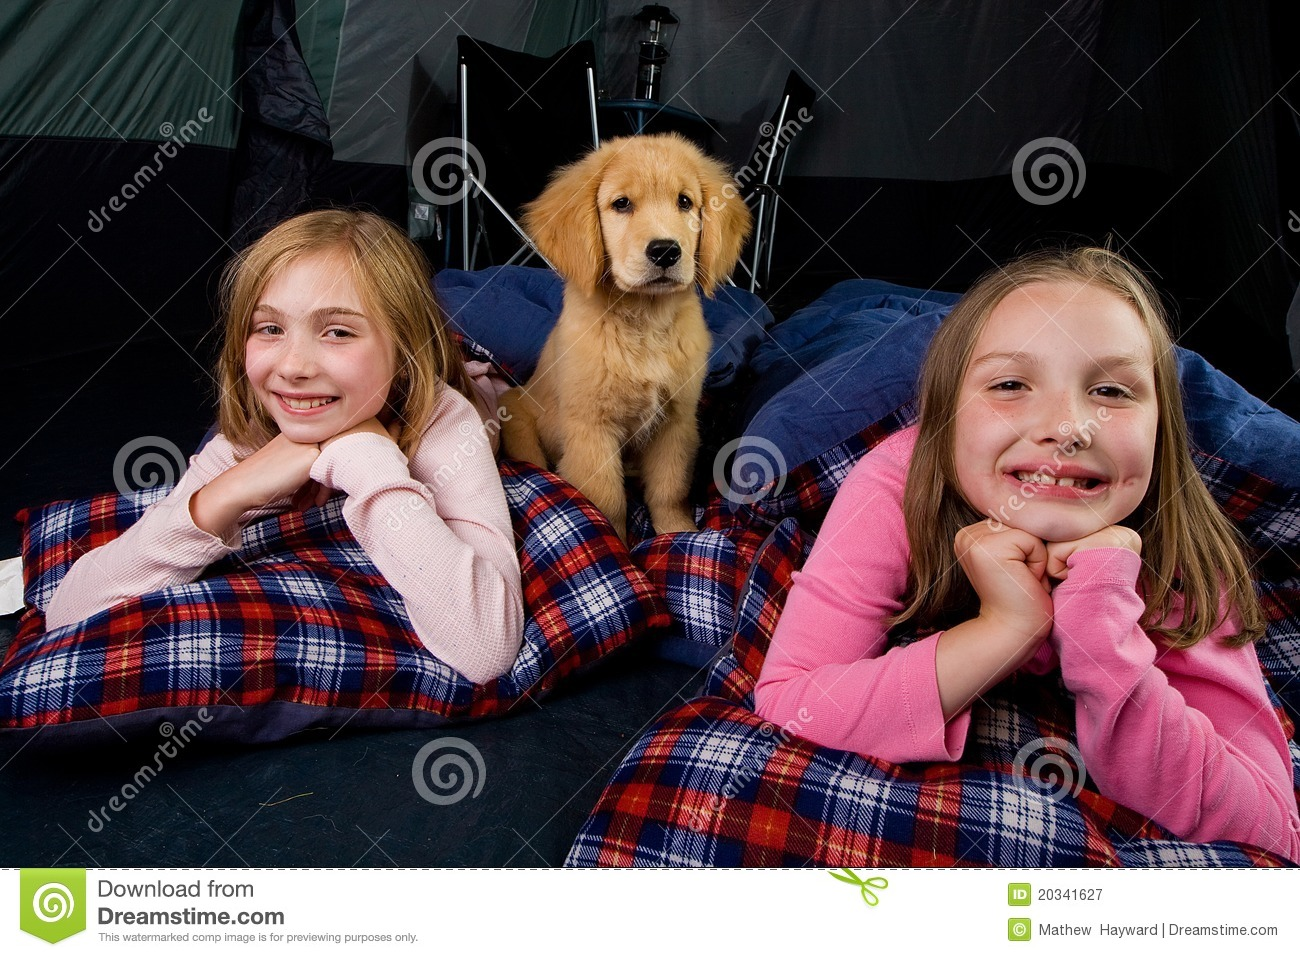 Kids and a puppy camping in a tent